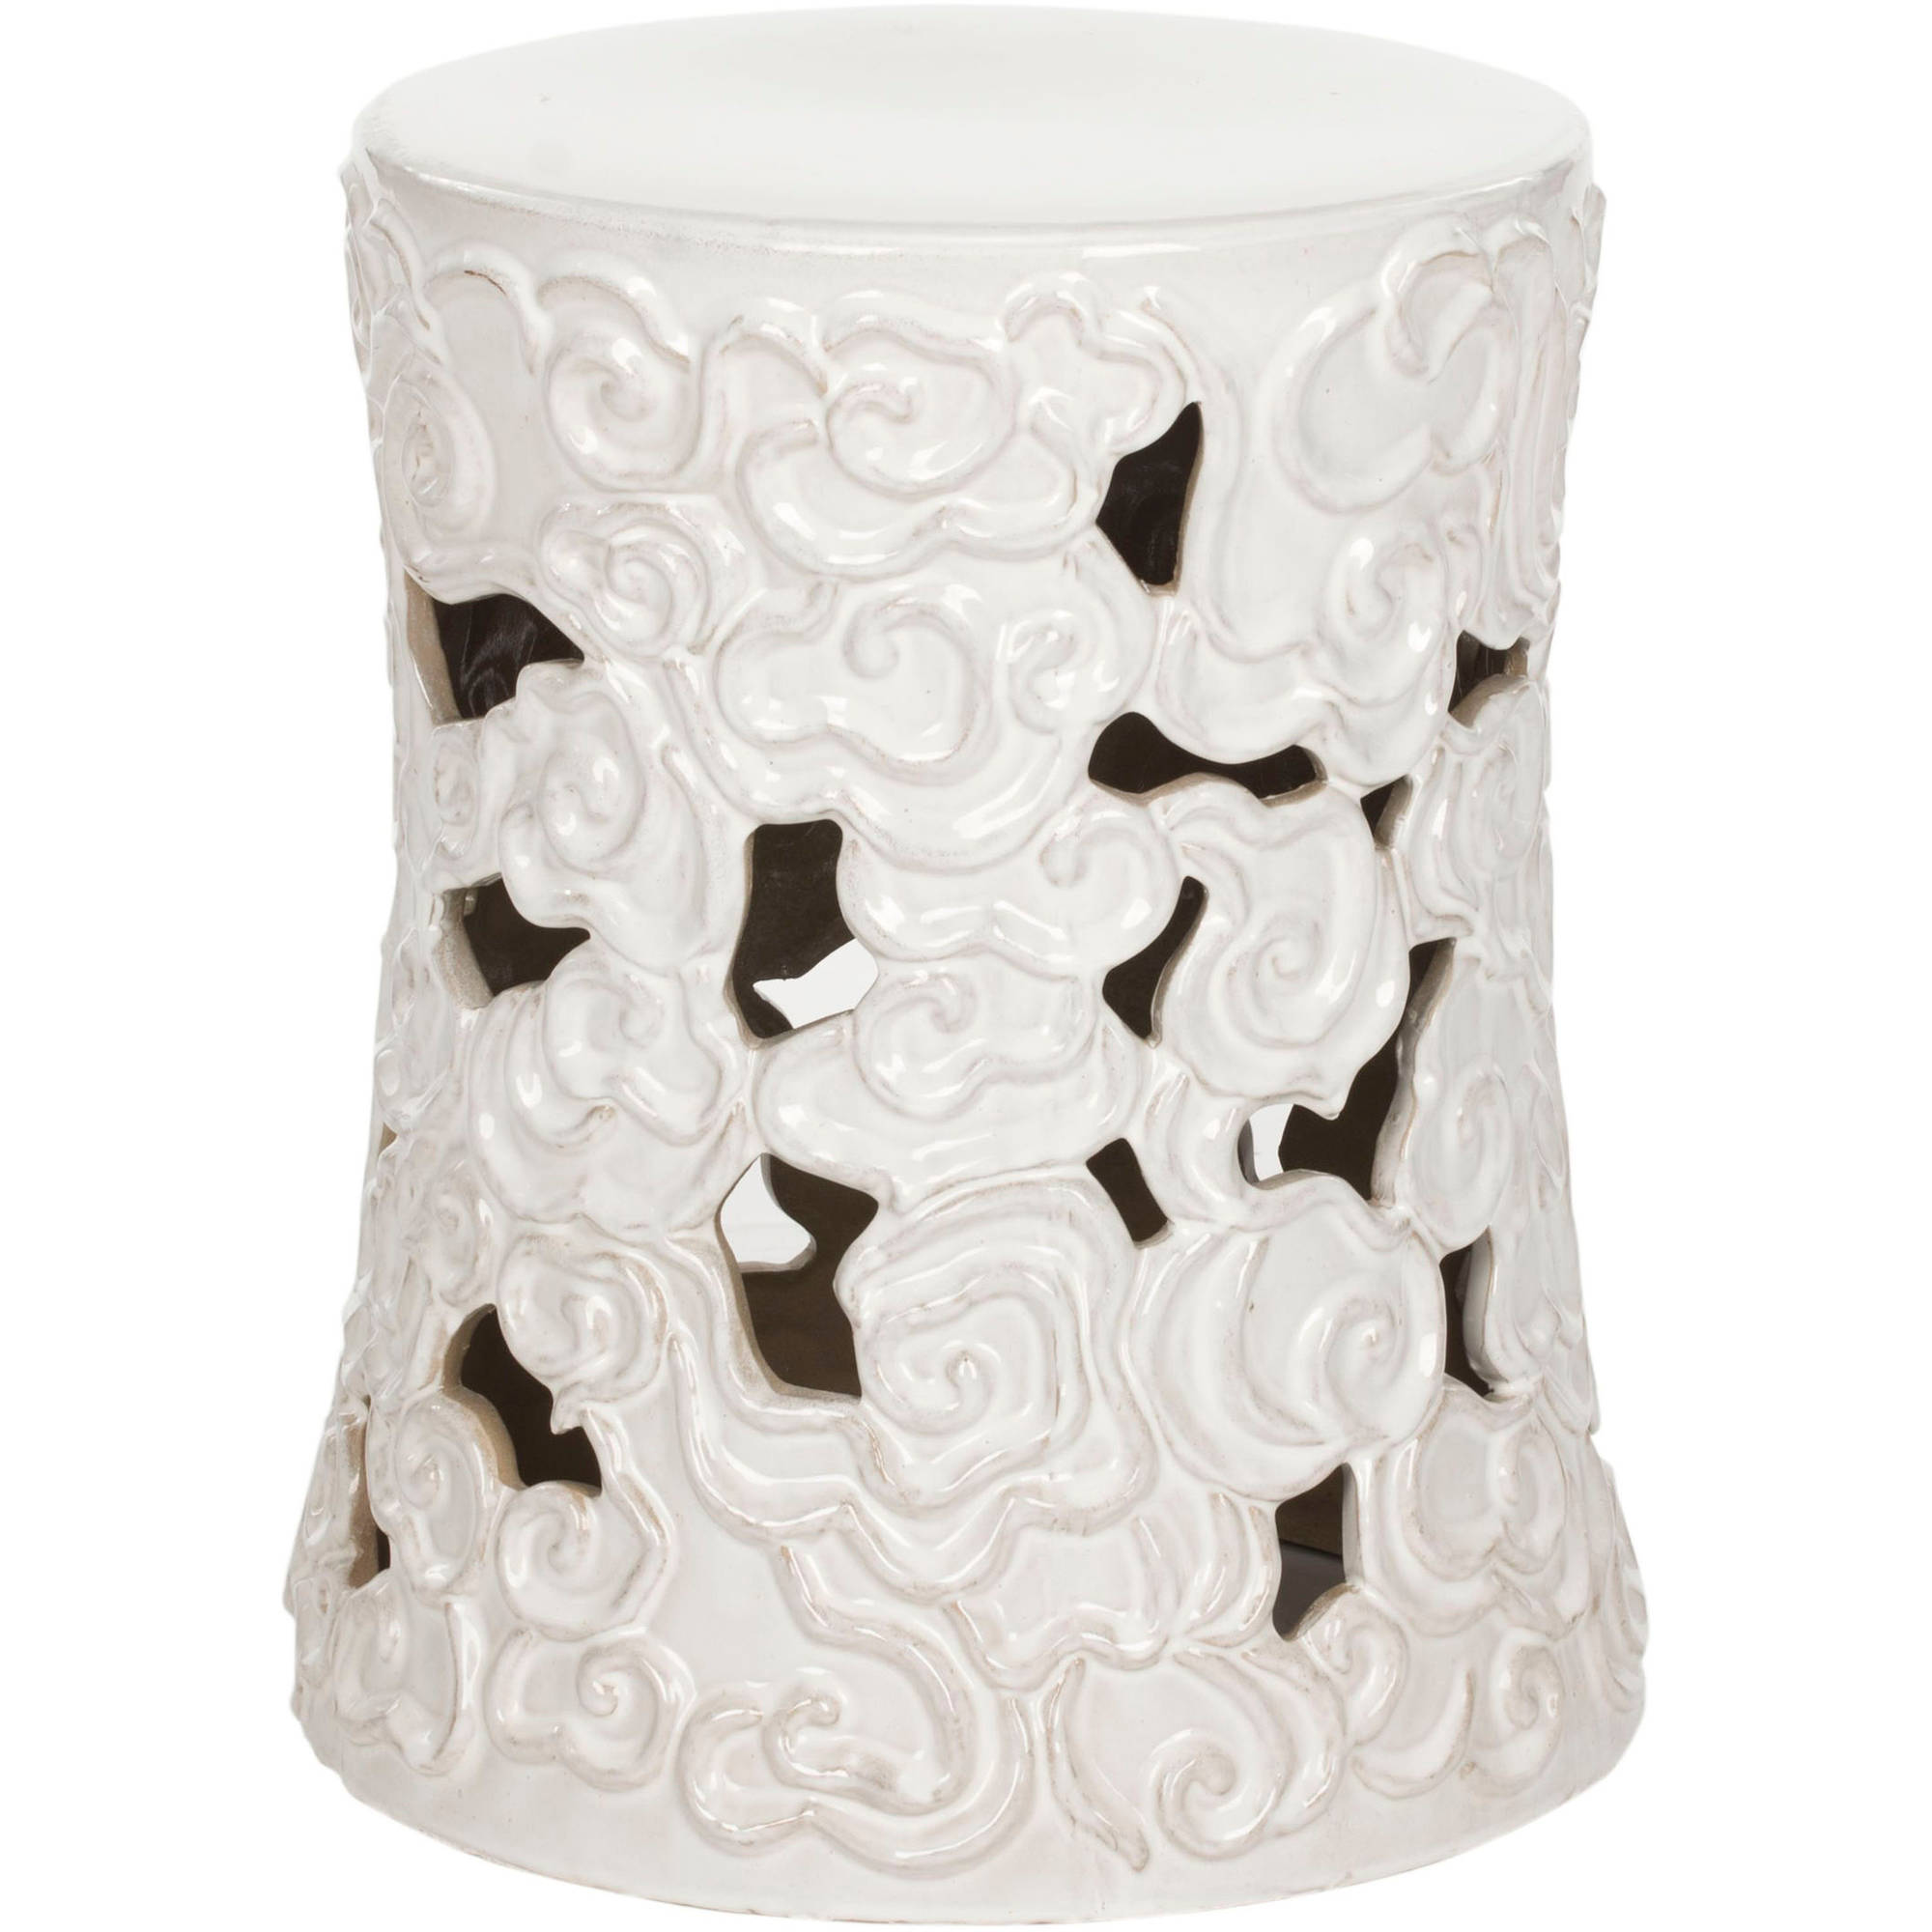 Safavieh Ocean Cloud Garden Stool